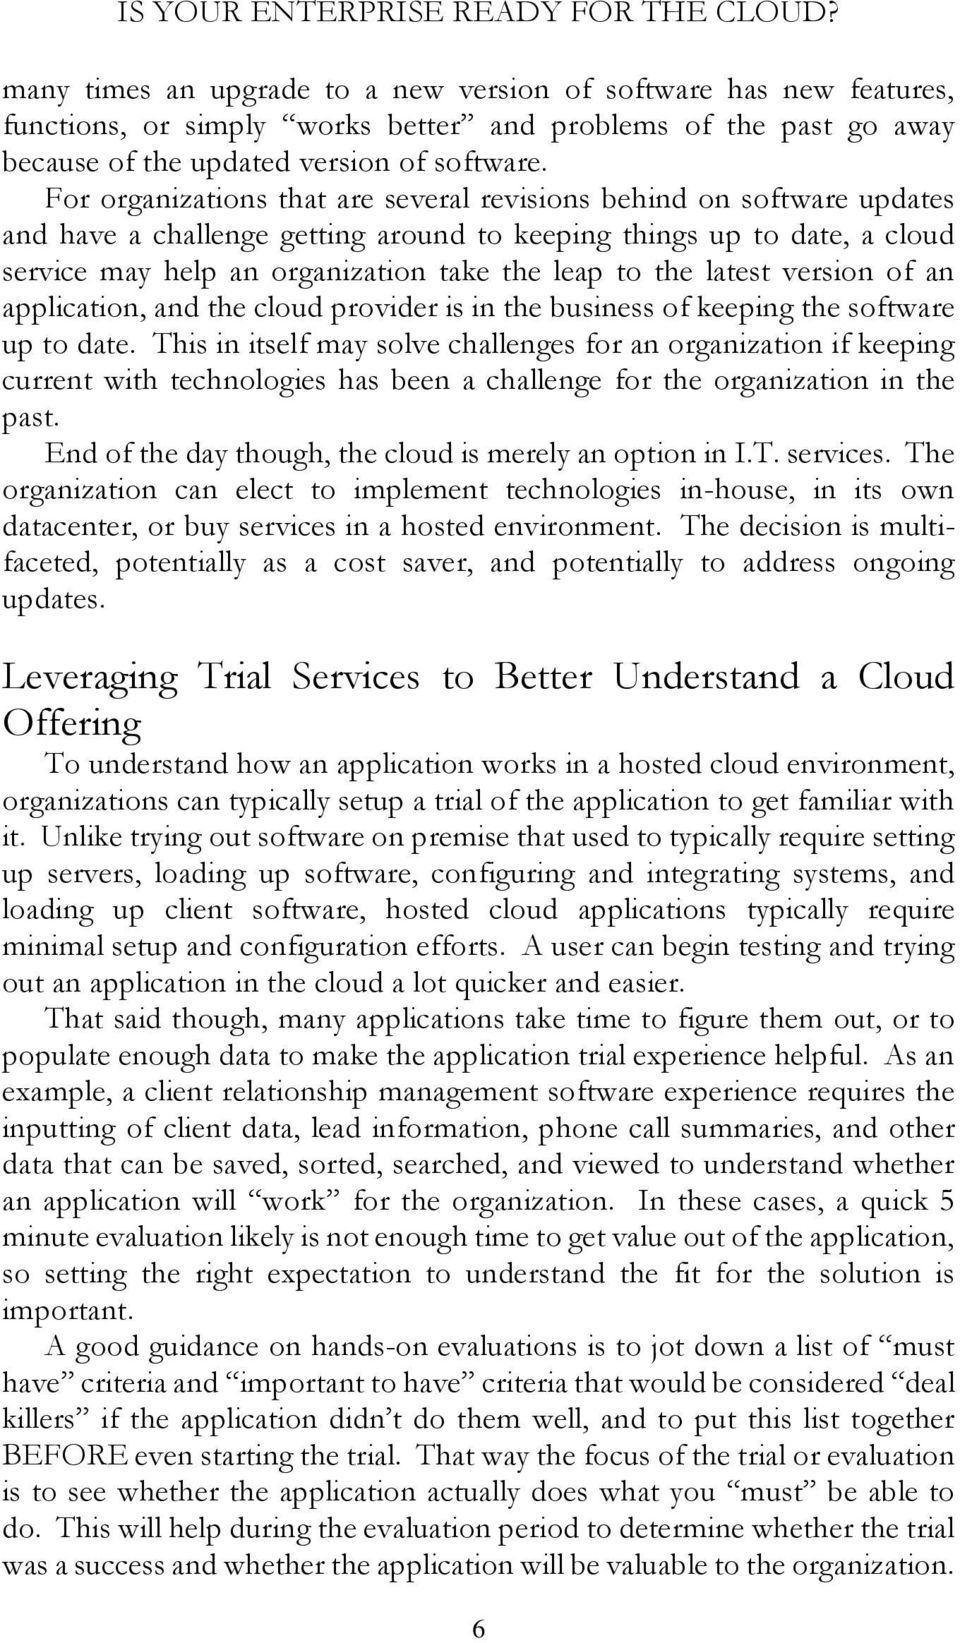 For organizations that are several revisions behind on software updates and have a challenge getting around to keeping things up to date, a cloud service may help an organization take the leap to the